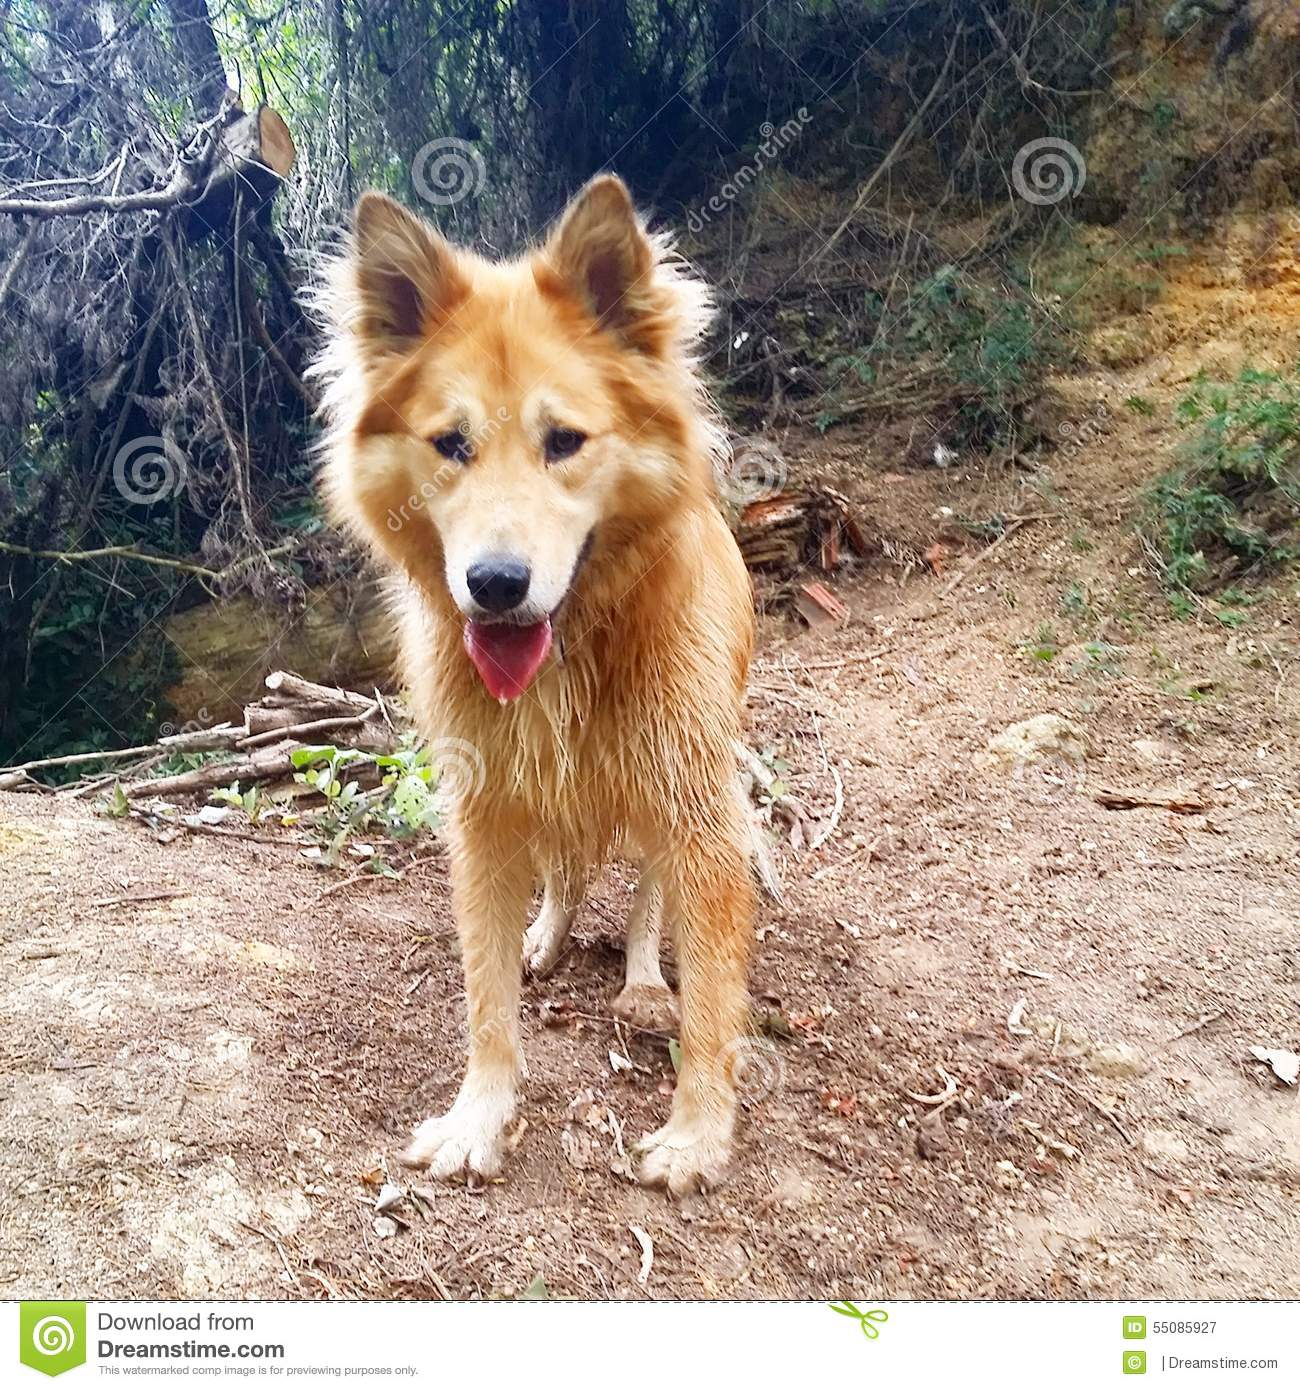 Alaskan Malamute Cross Golden Retriever Stock Image Image Of